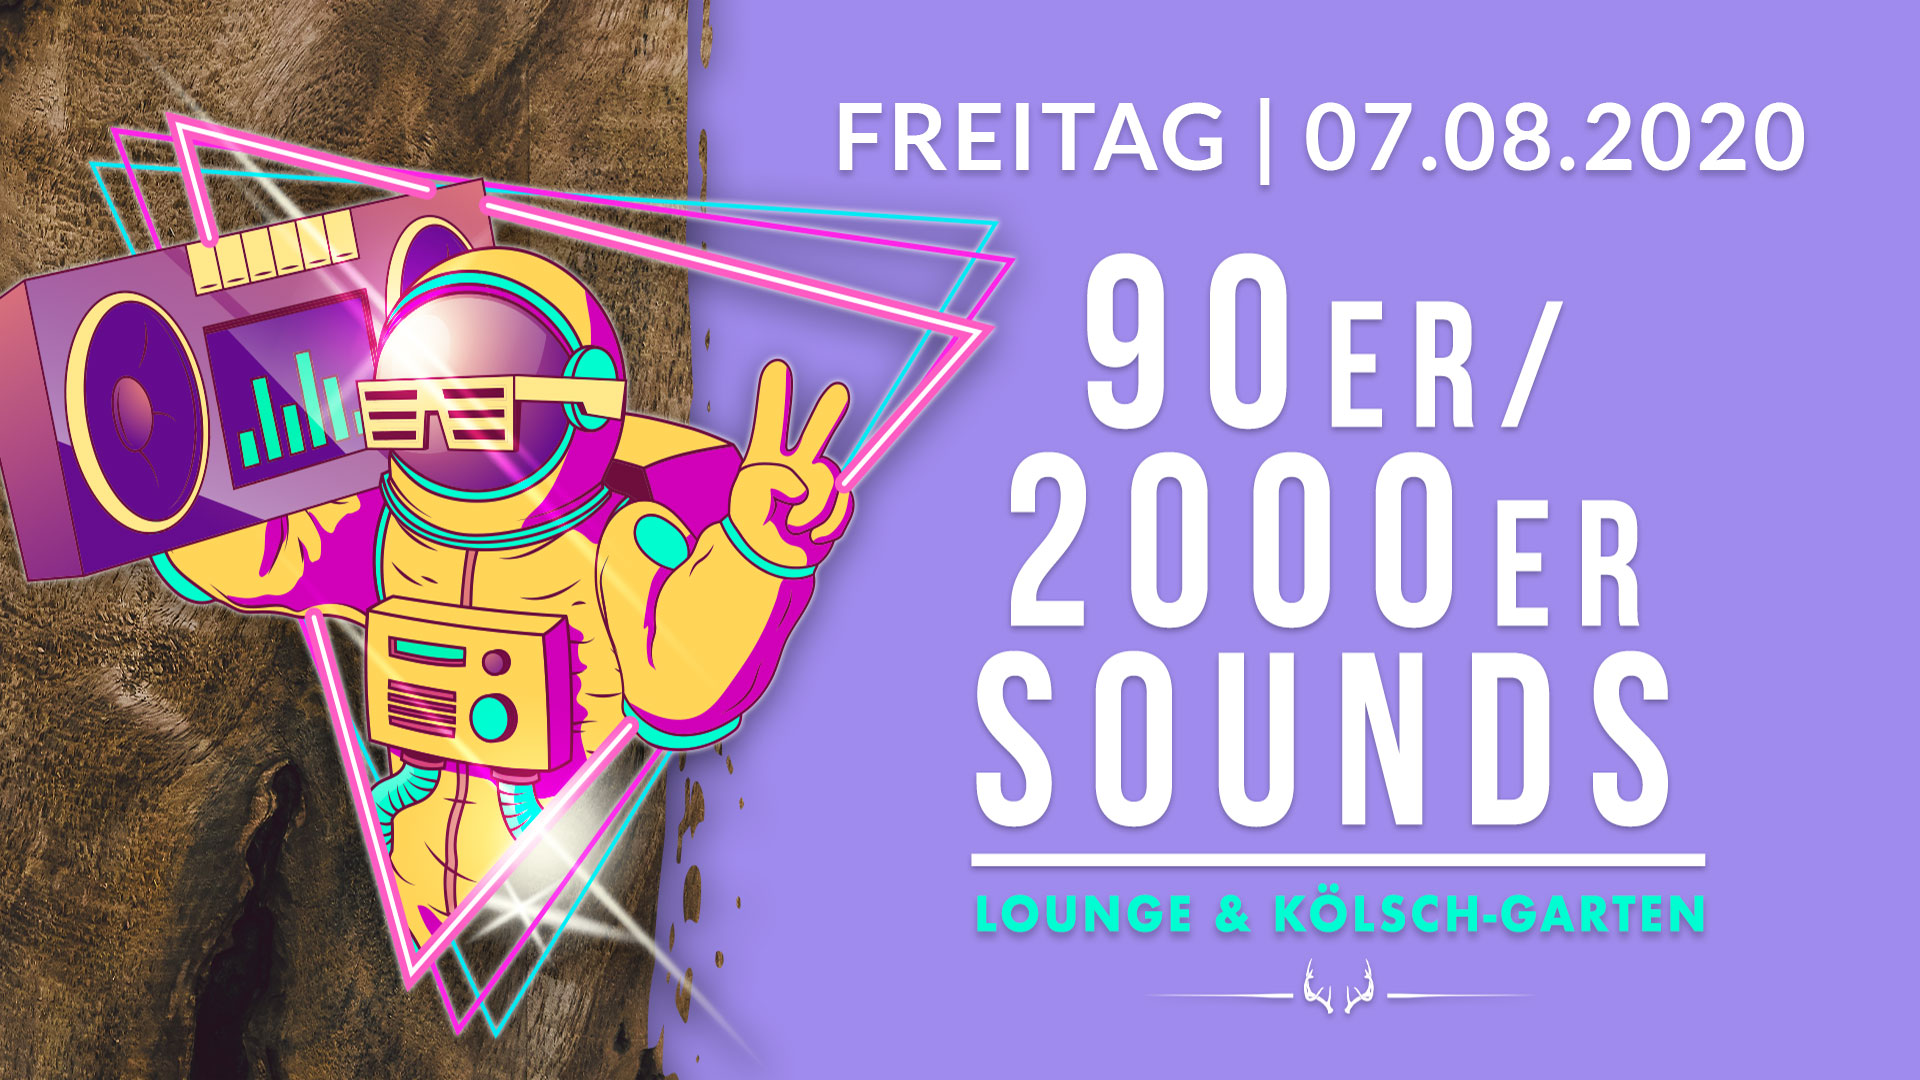 quater-1-events-90er-2000er-sounds-070820